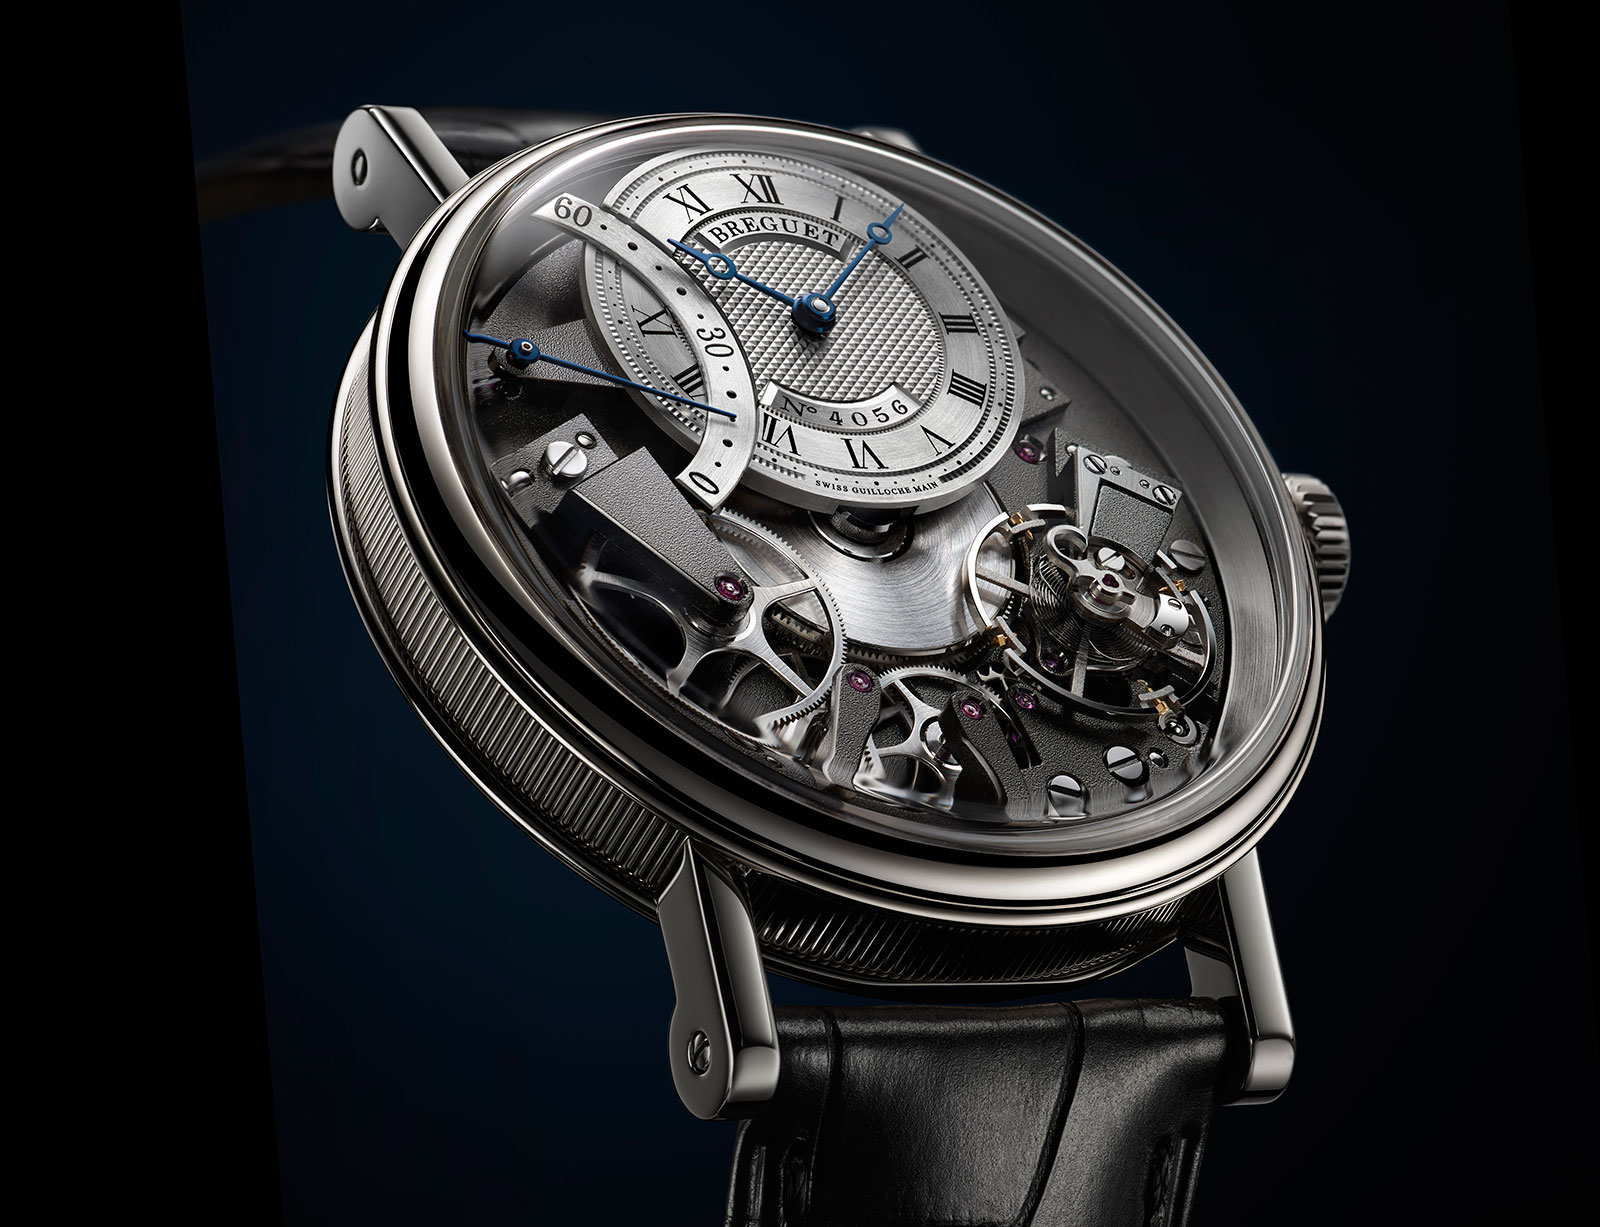 Breguet-La-Tradition-Automatique-Seconde-Retrograde-7097-2